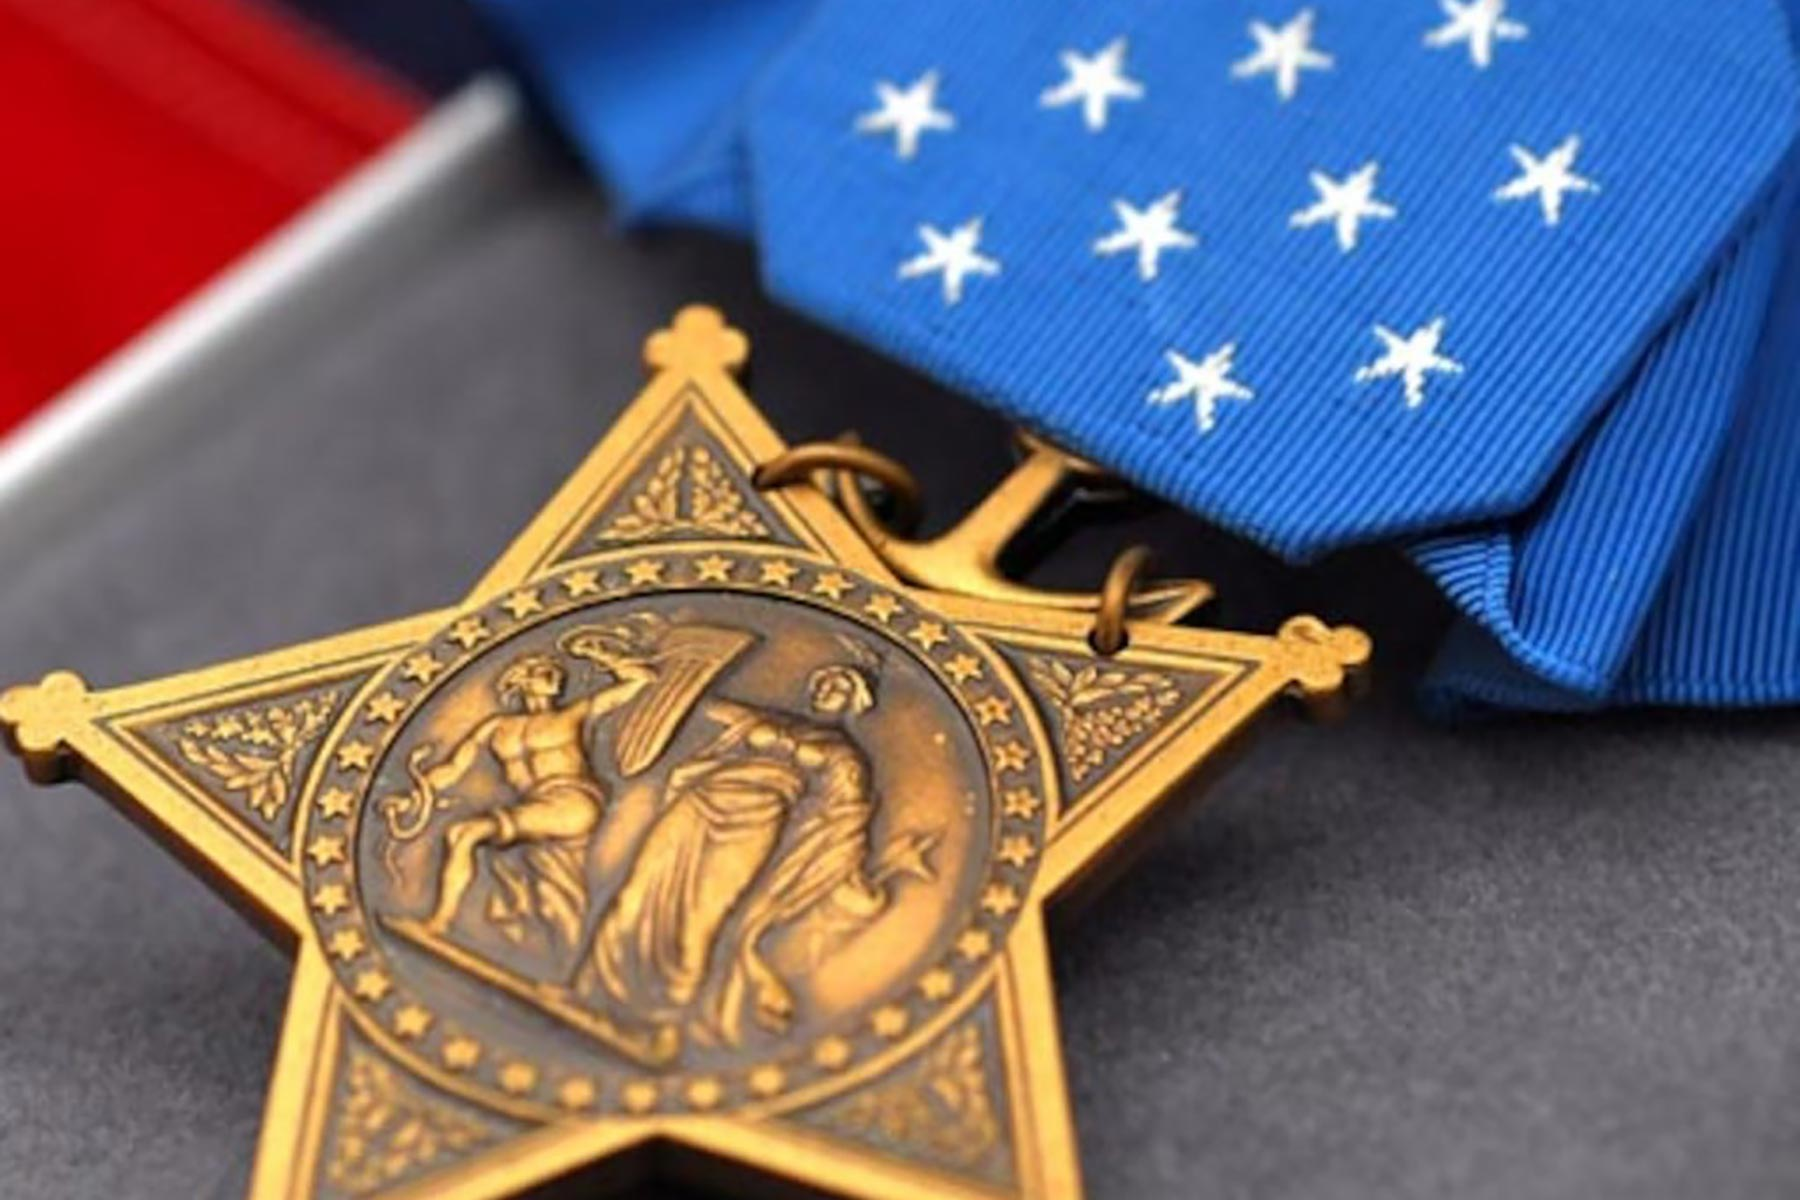 Medal of Honor, nfl